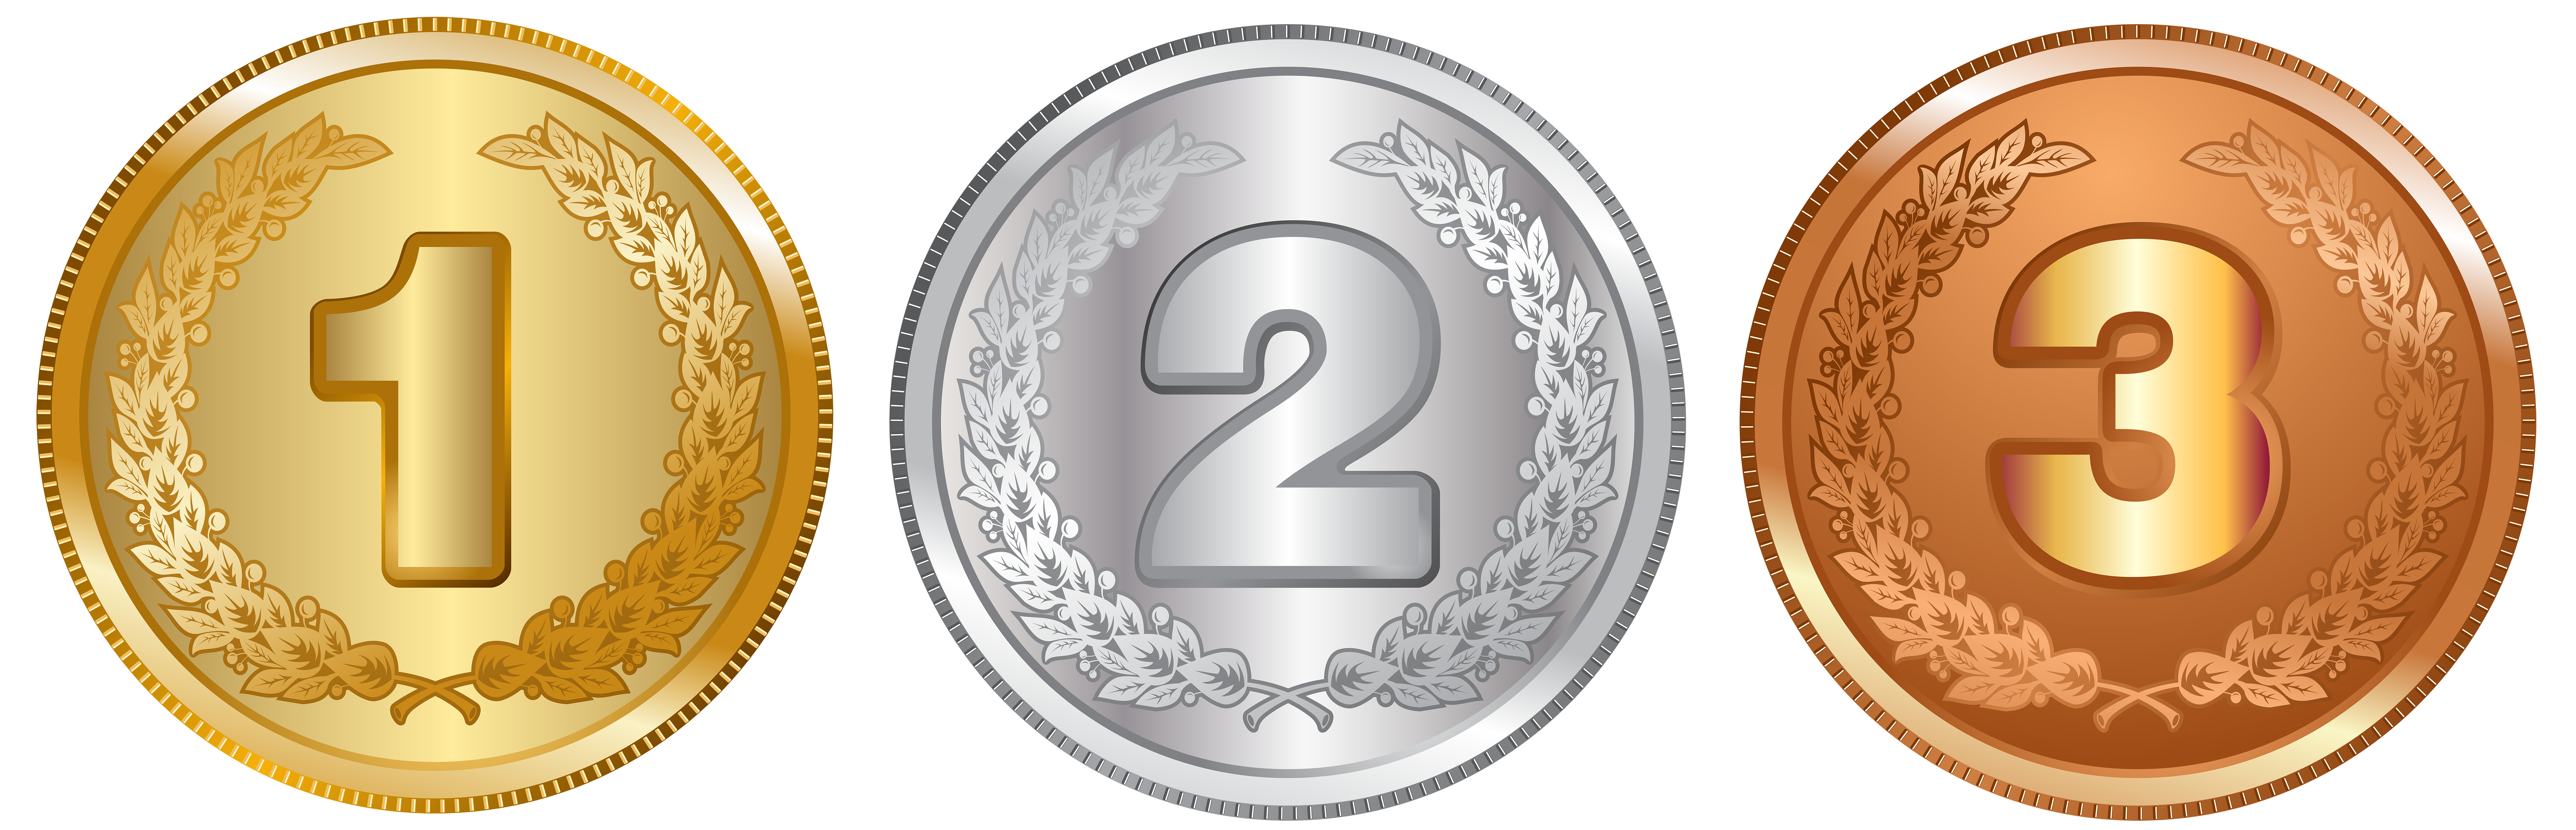 Coin clipart plain gold. Silver and bronze medals